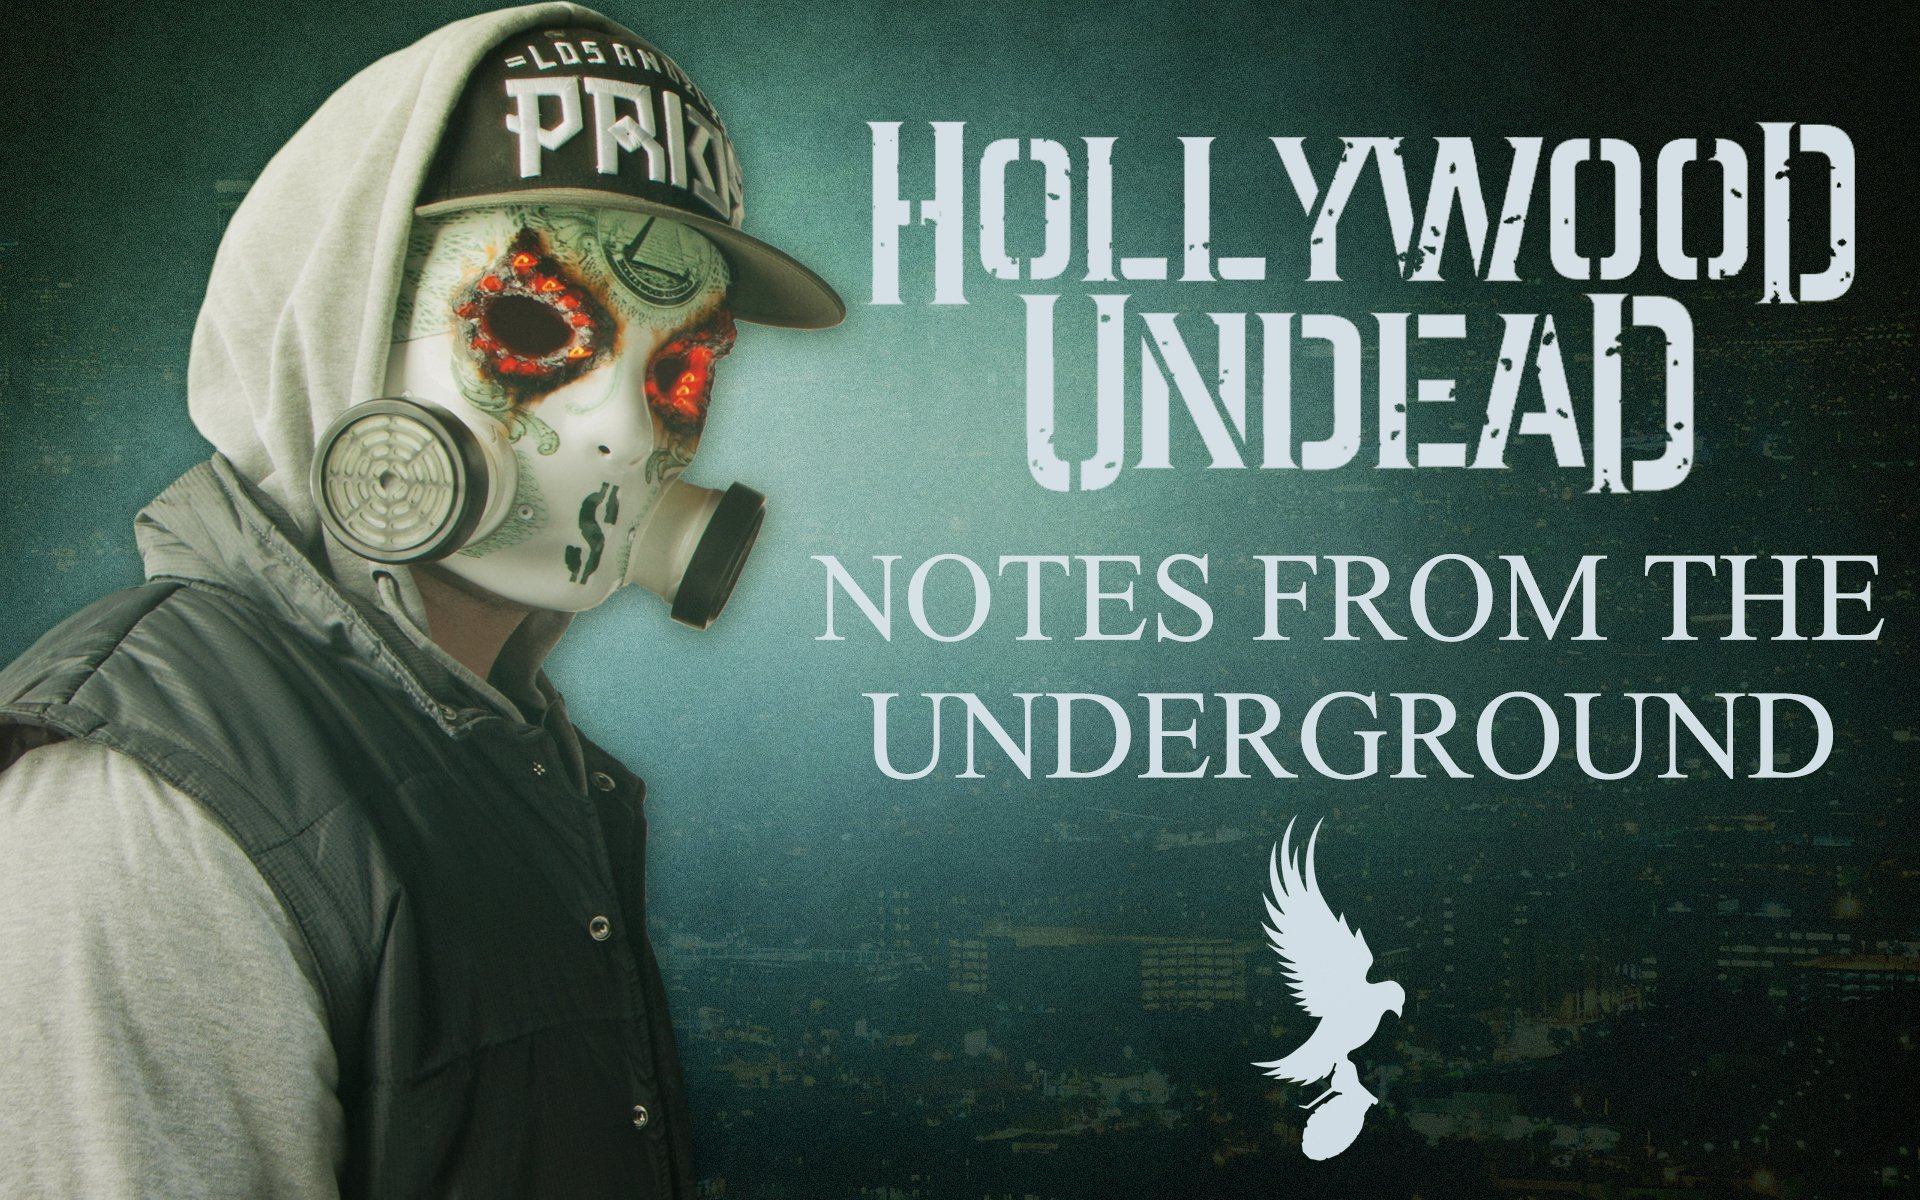 j-dog, notes from the underground, hollywood undead